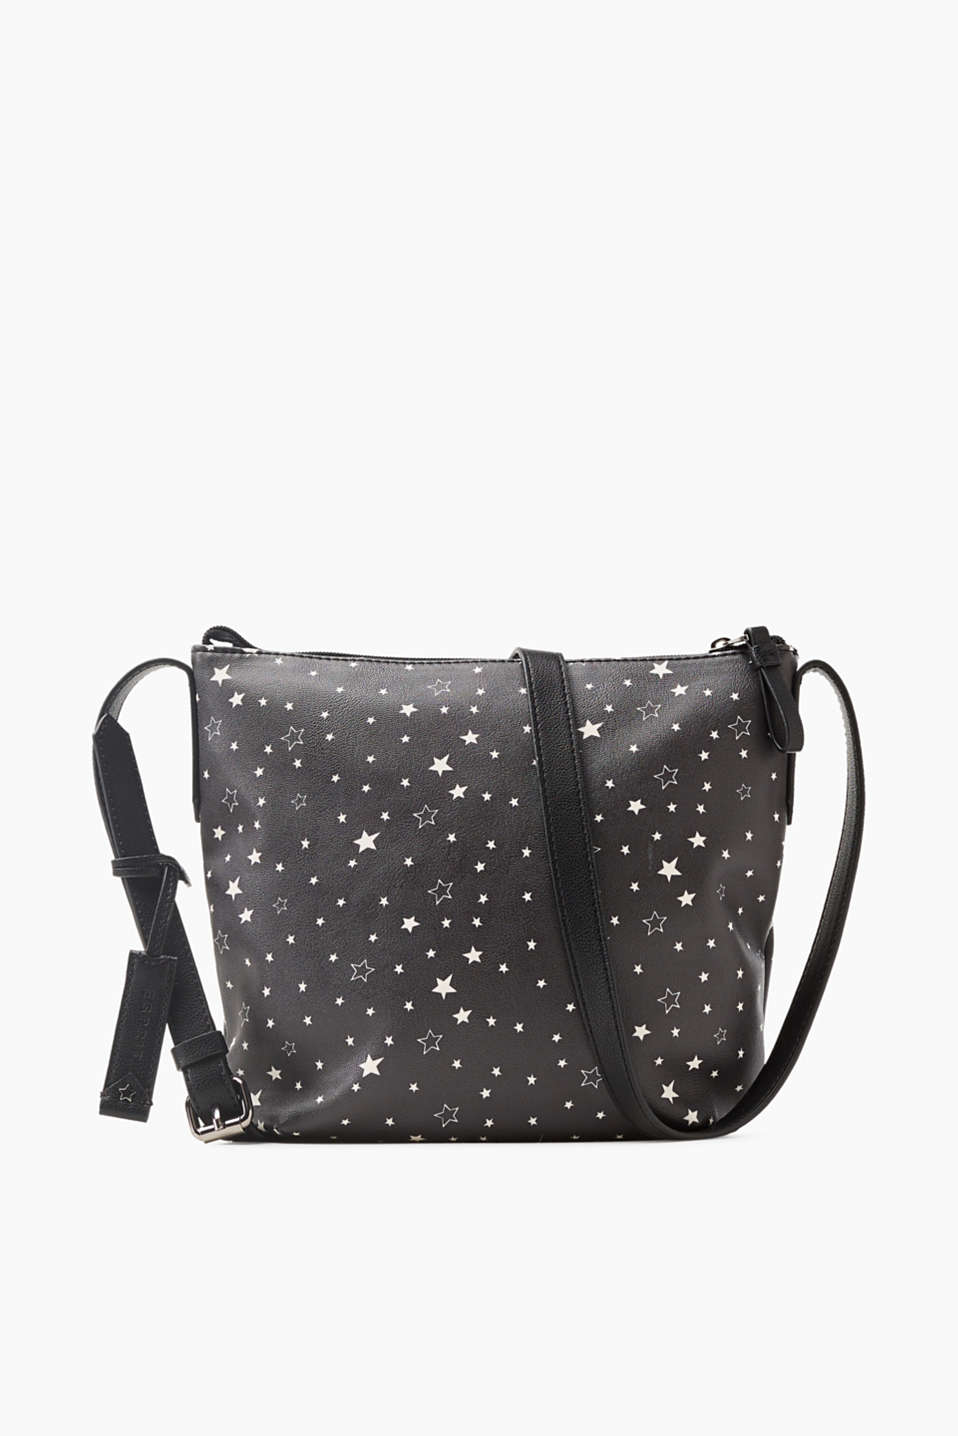 Written in the stars! This smooth faux leather shoulder bag features a large star print